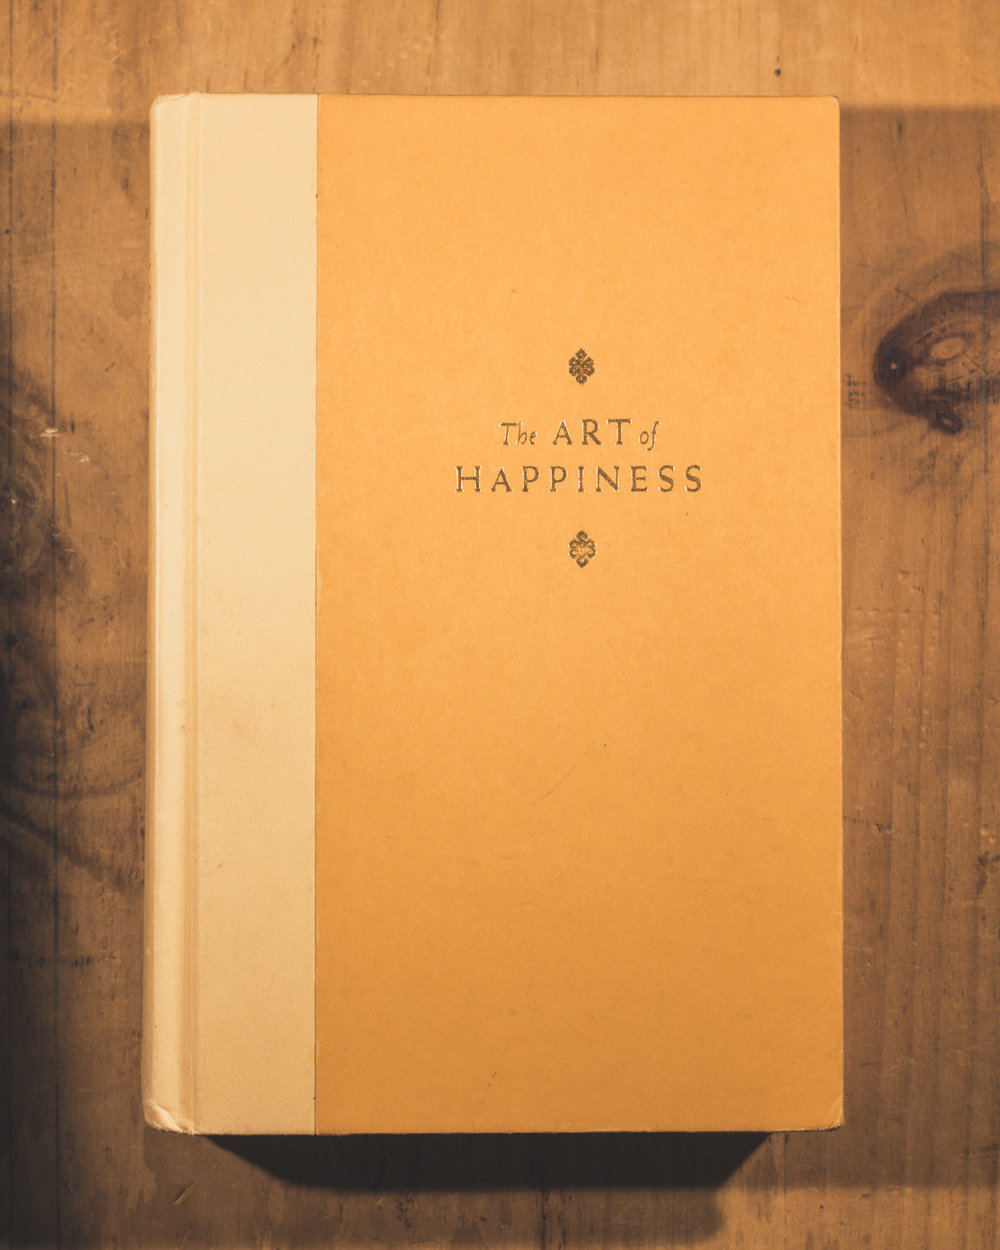 The Art of Happiness by His Holiness the Dalai Lama and Howard C. Cutler, M.D.